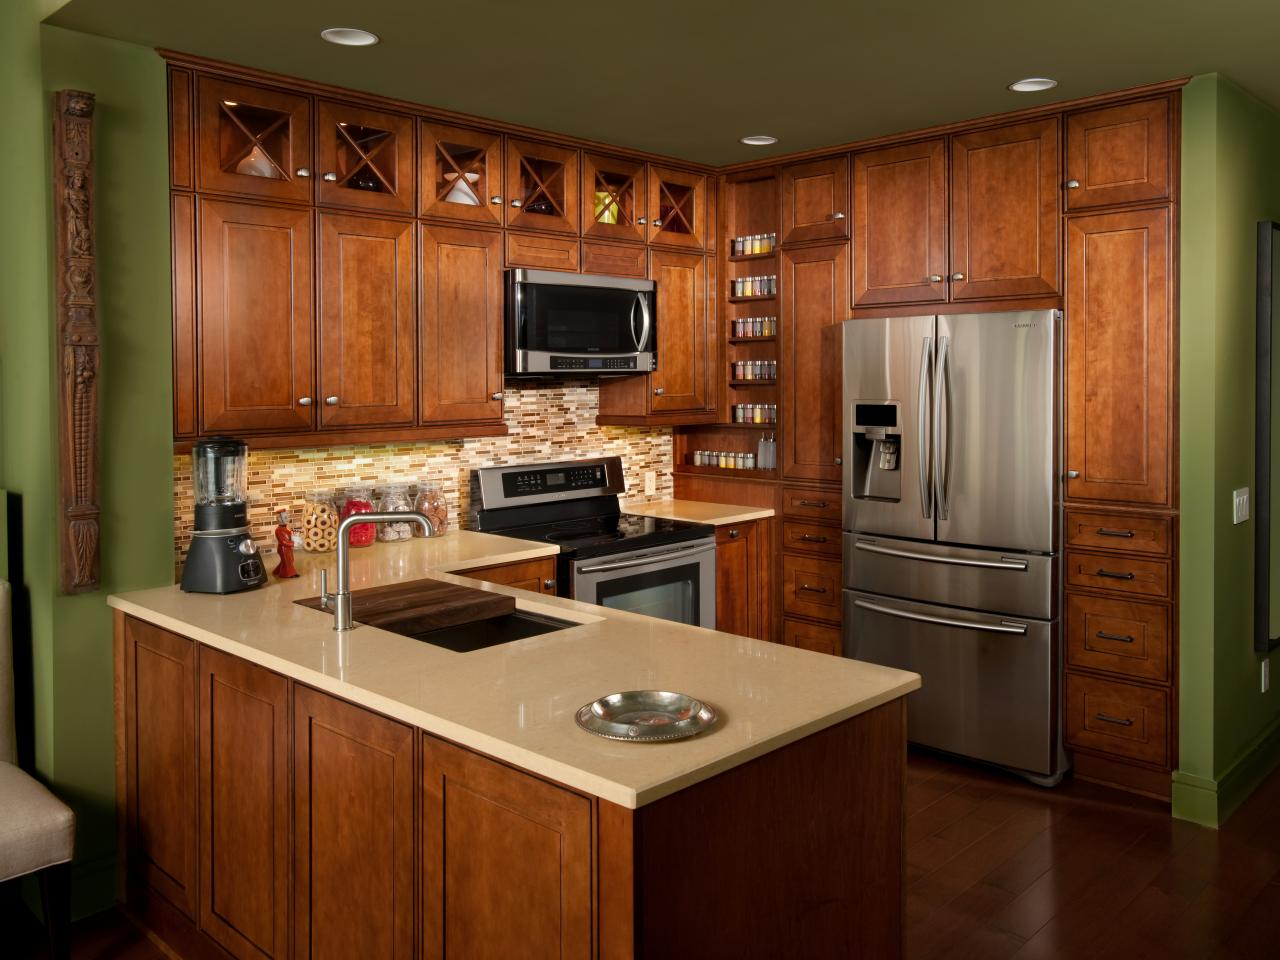 The Best Interior Home Remodel Projects To Boost ROI